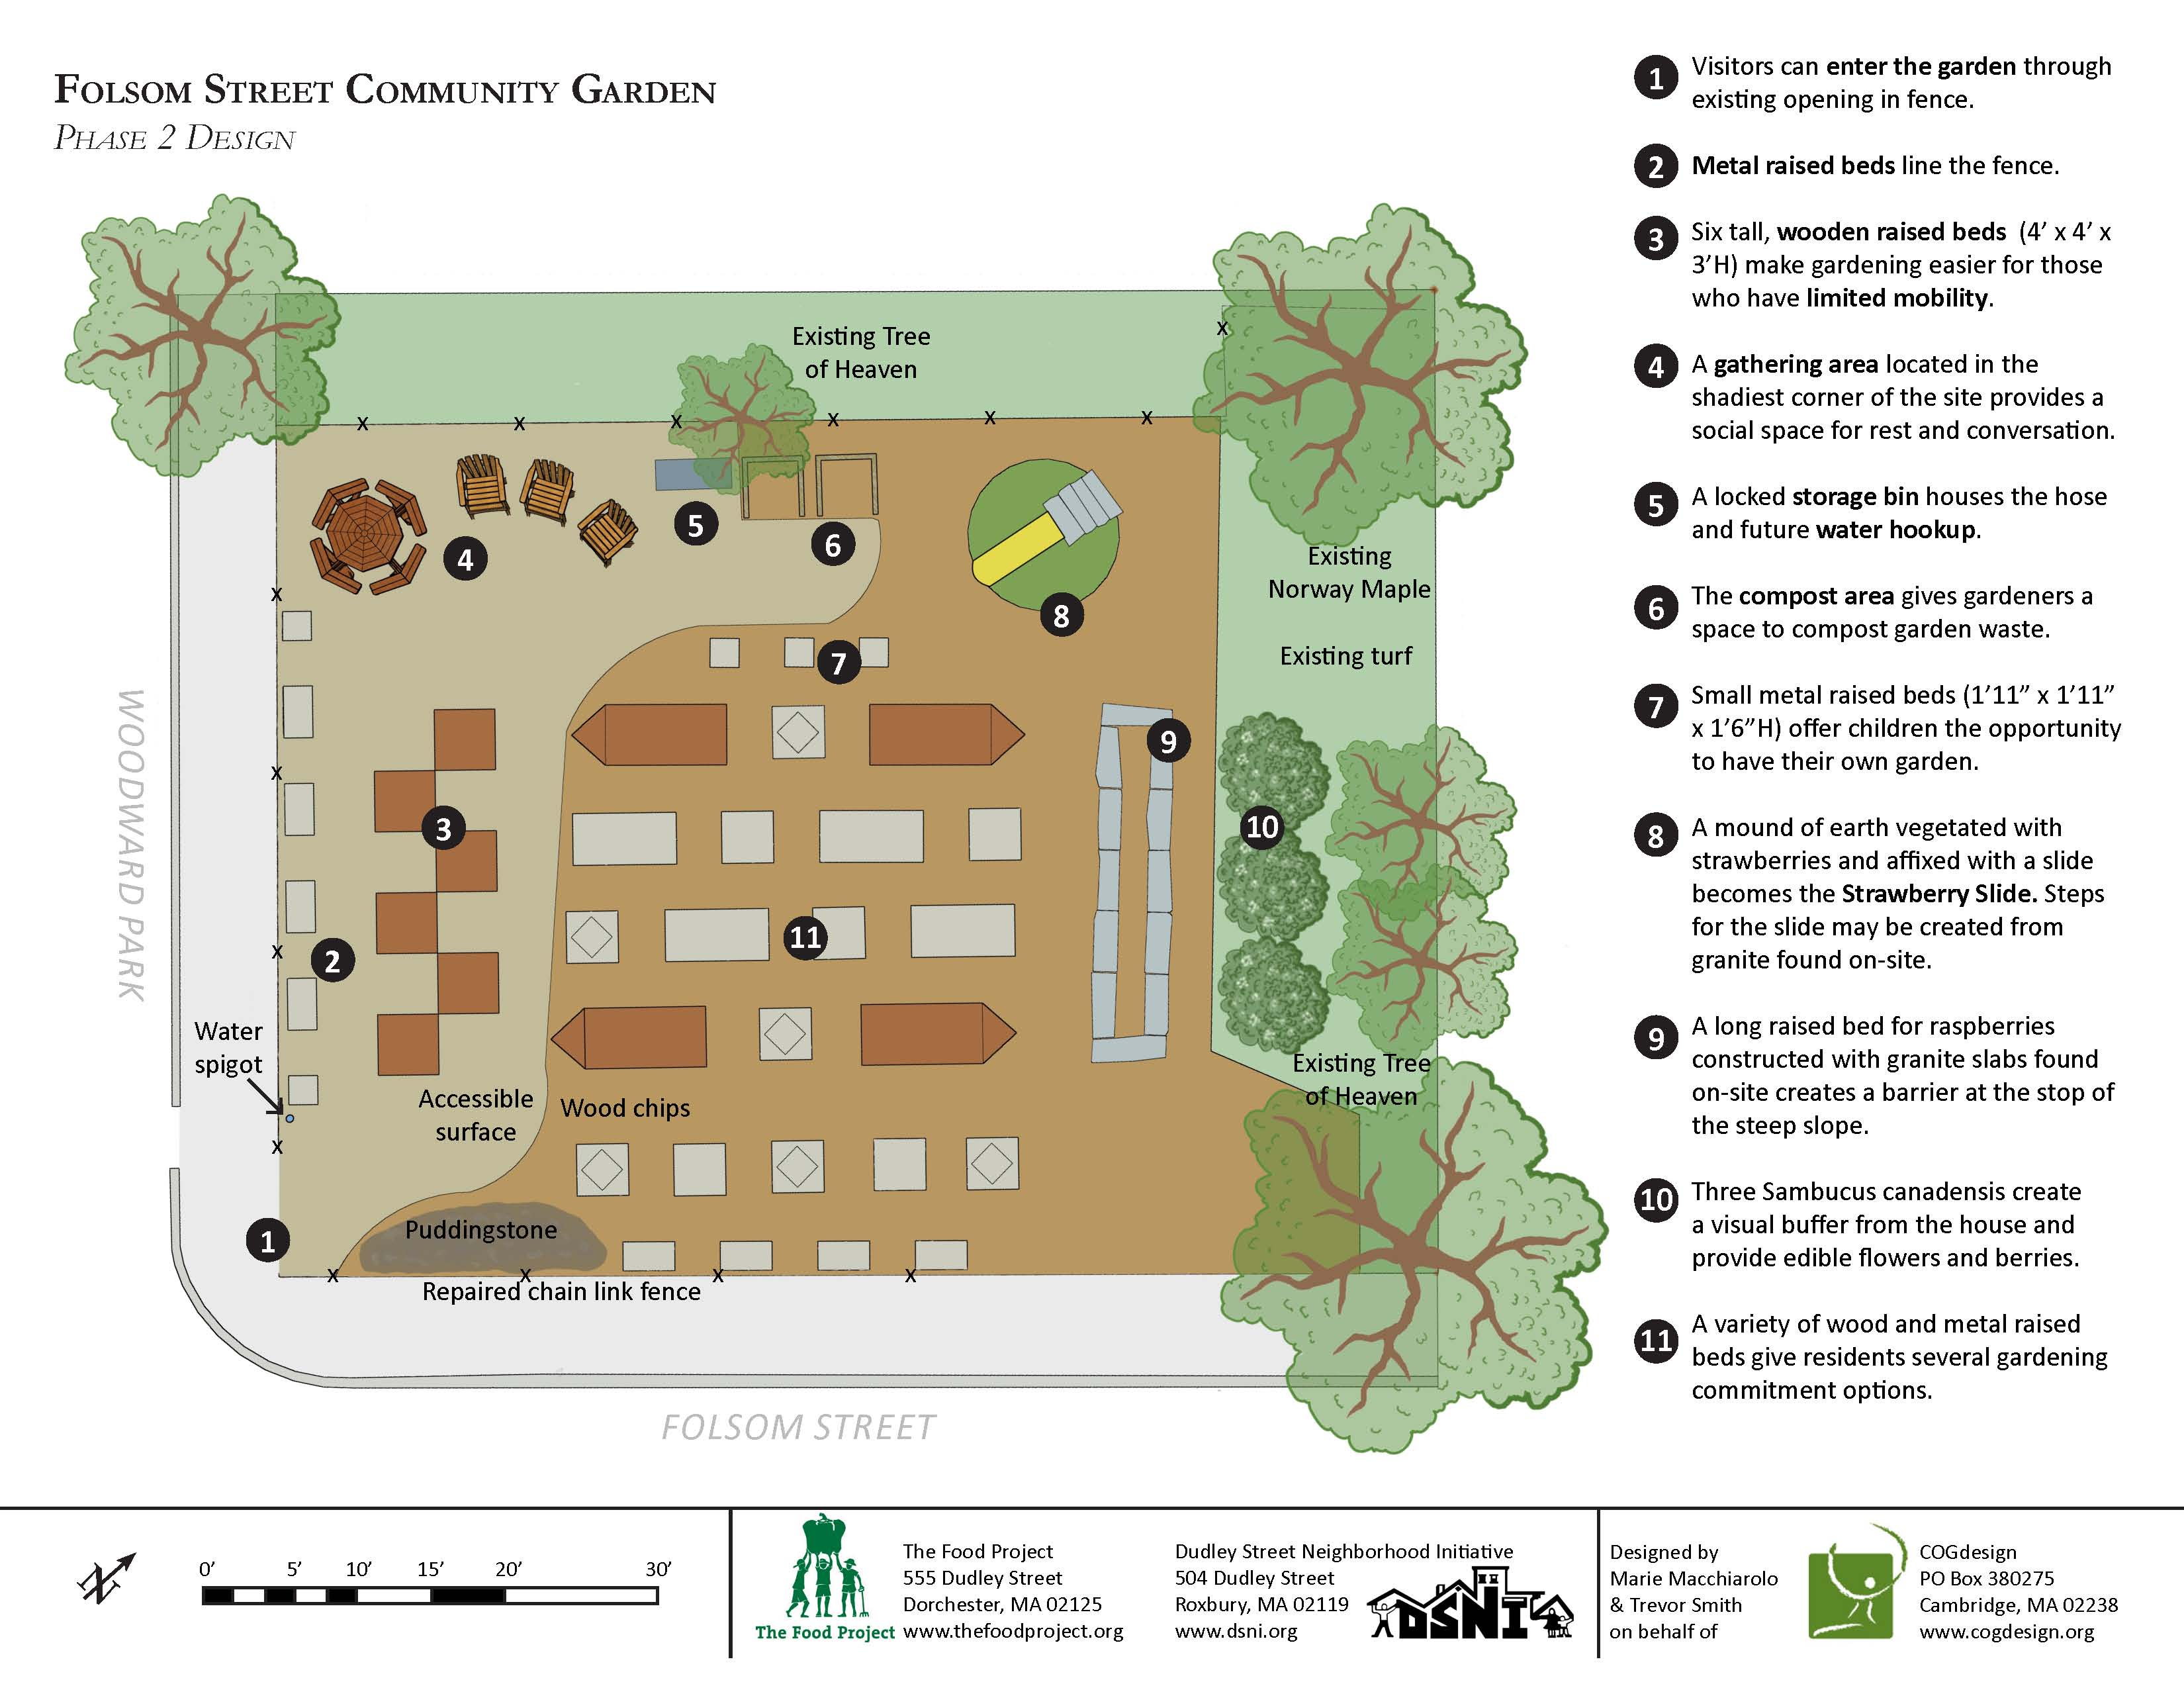 Final Plans: Folsom Street Community Garden (The Food Project)